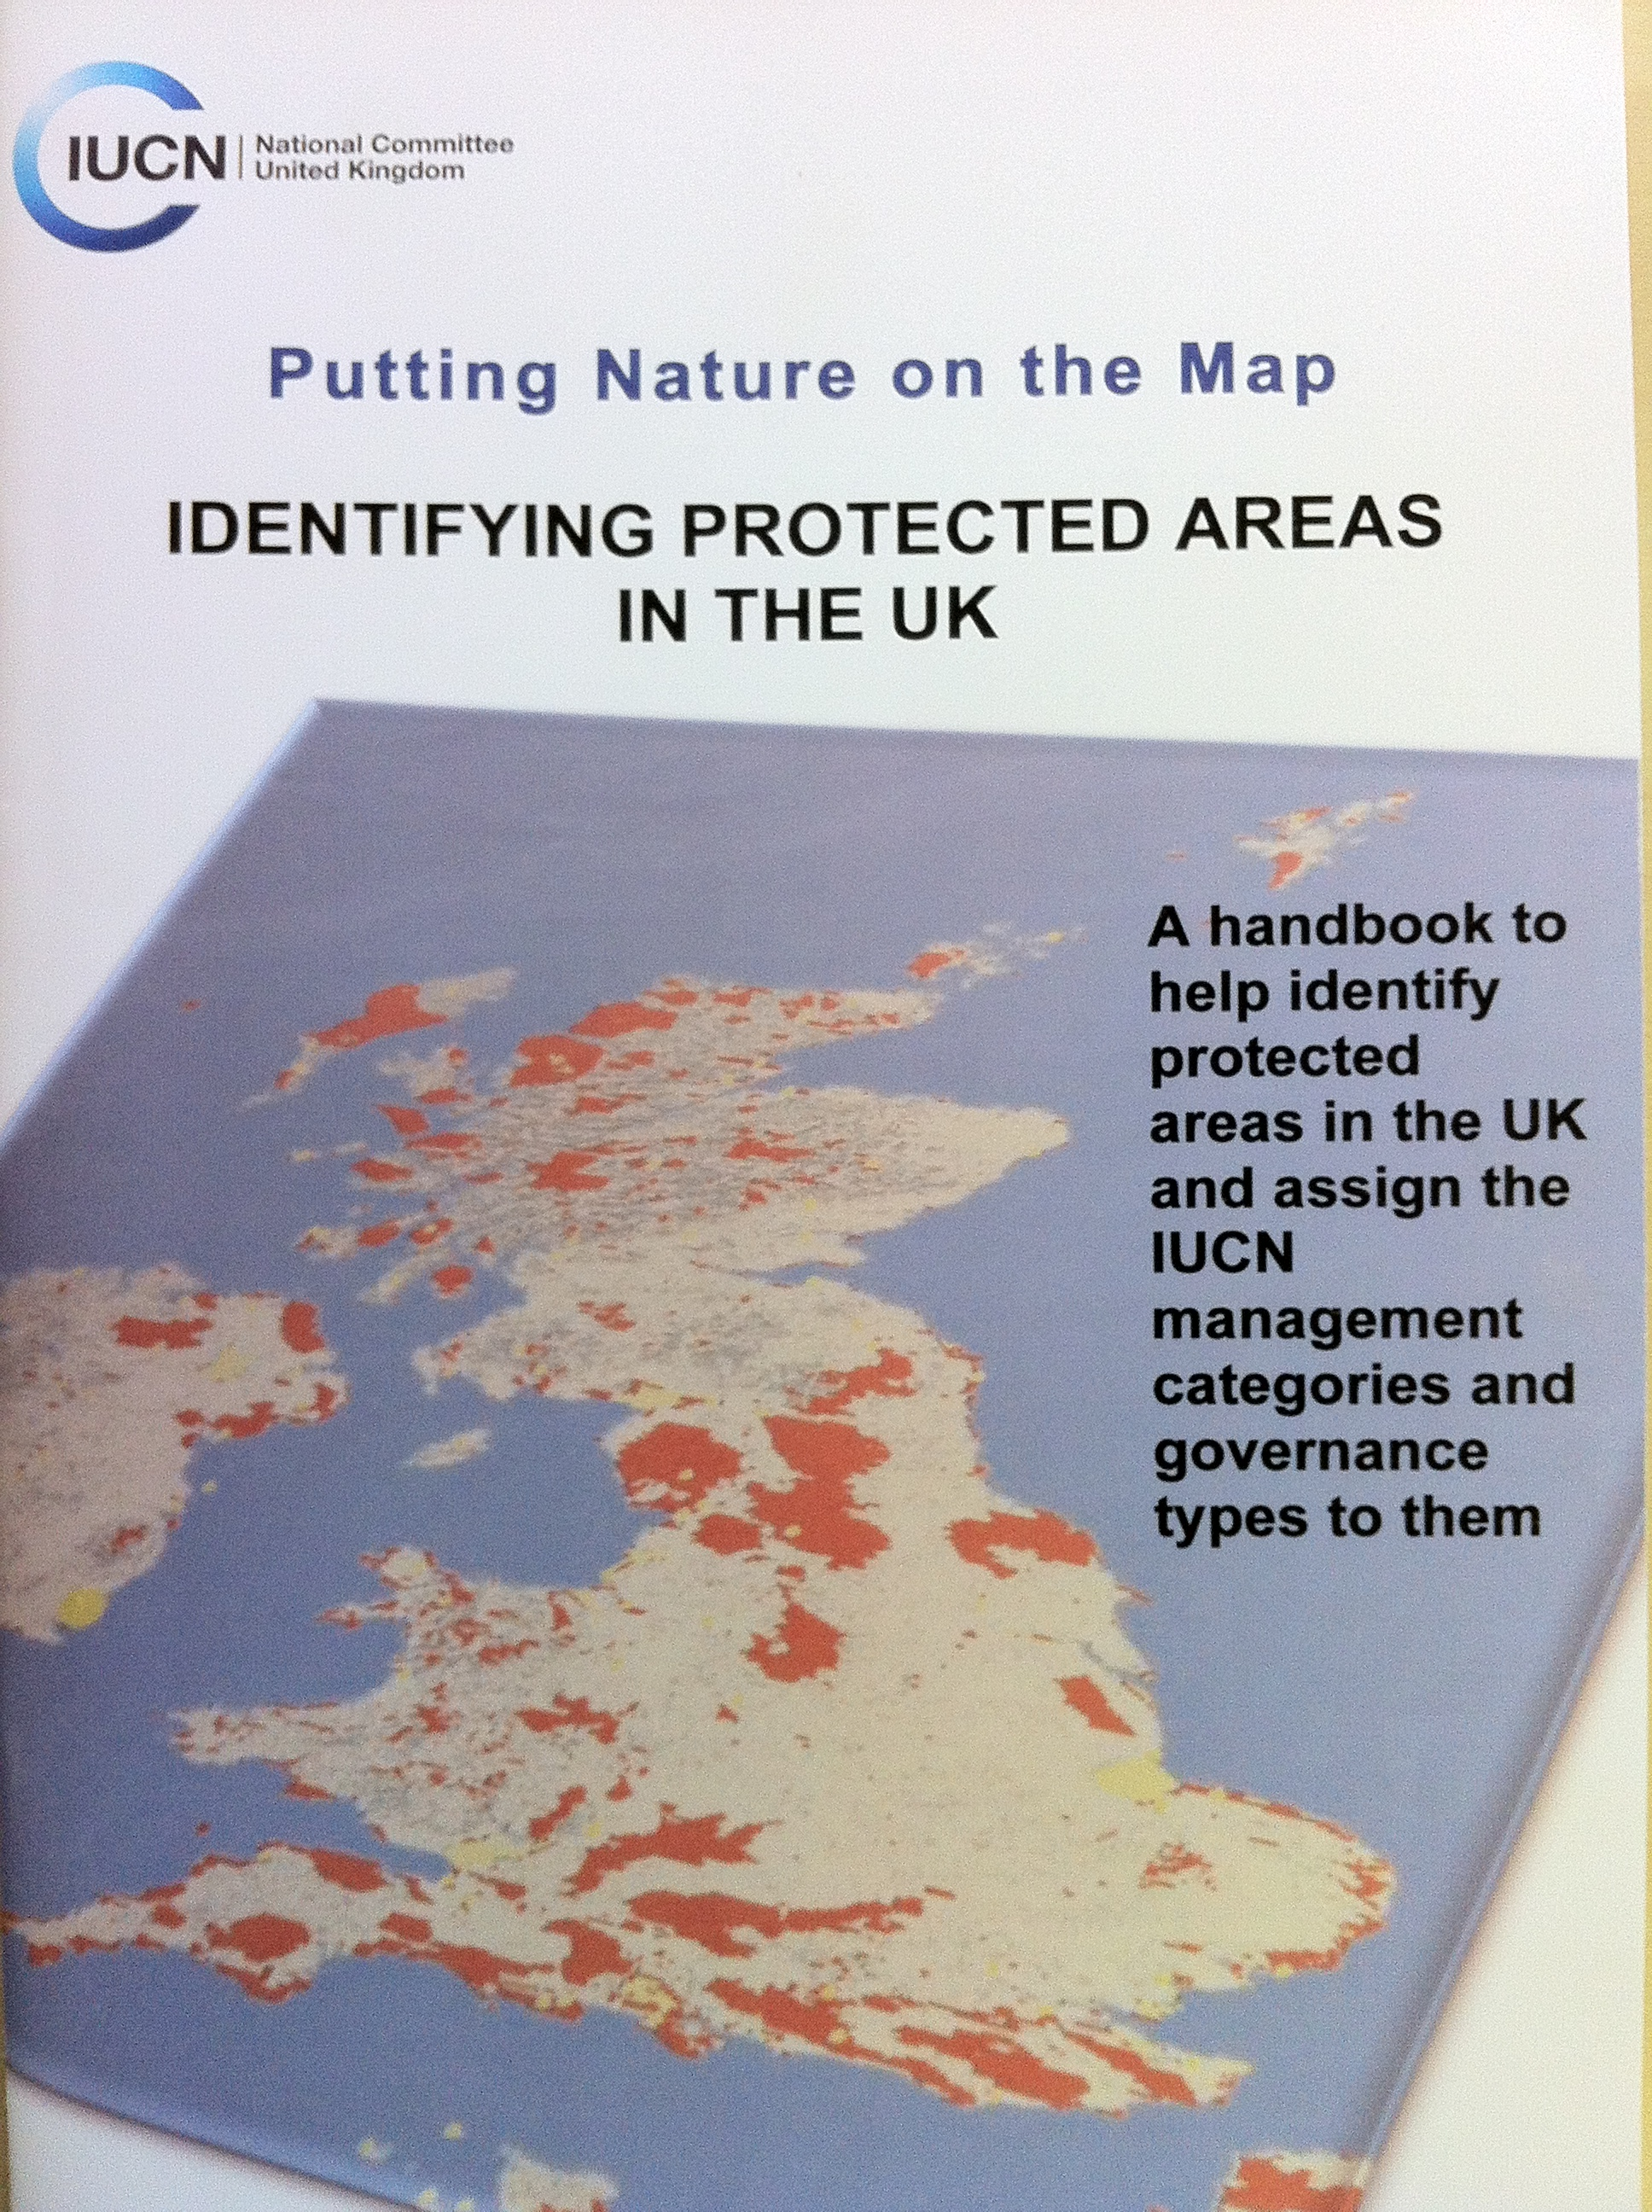 Nature On The Map Putting Nature on the Map – National Committee UK